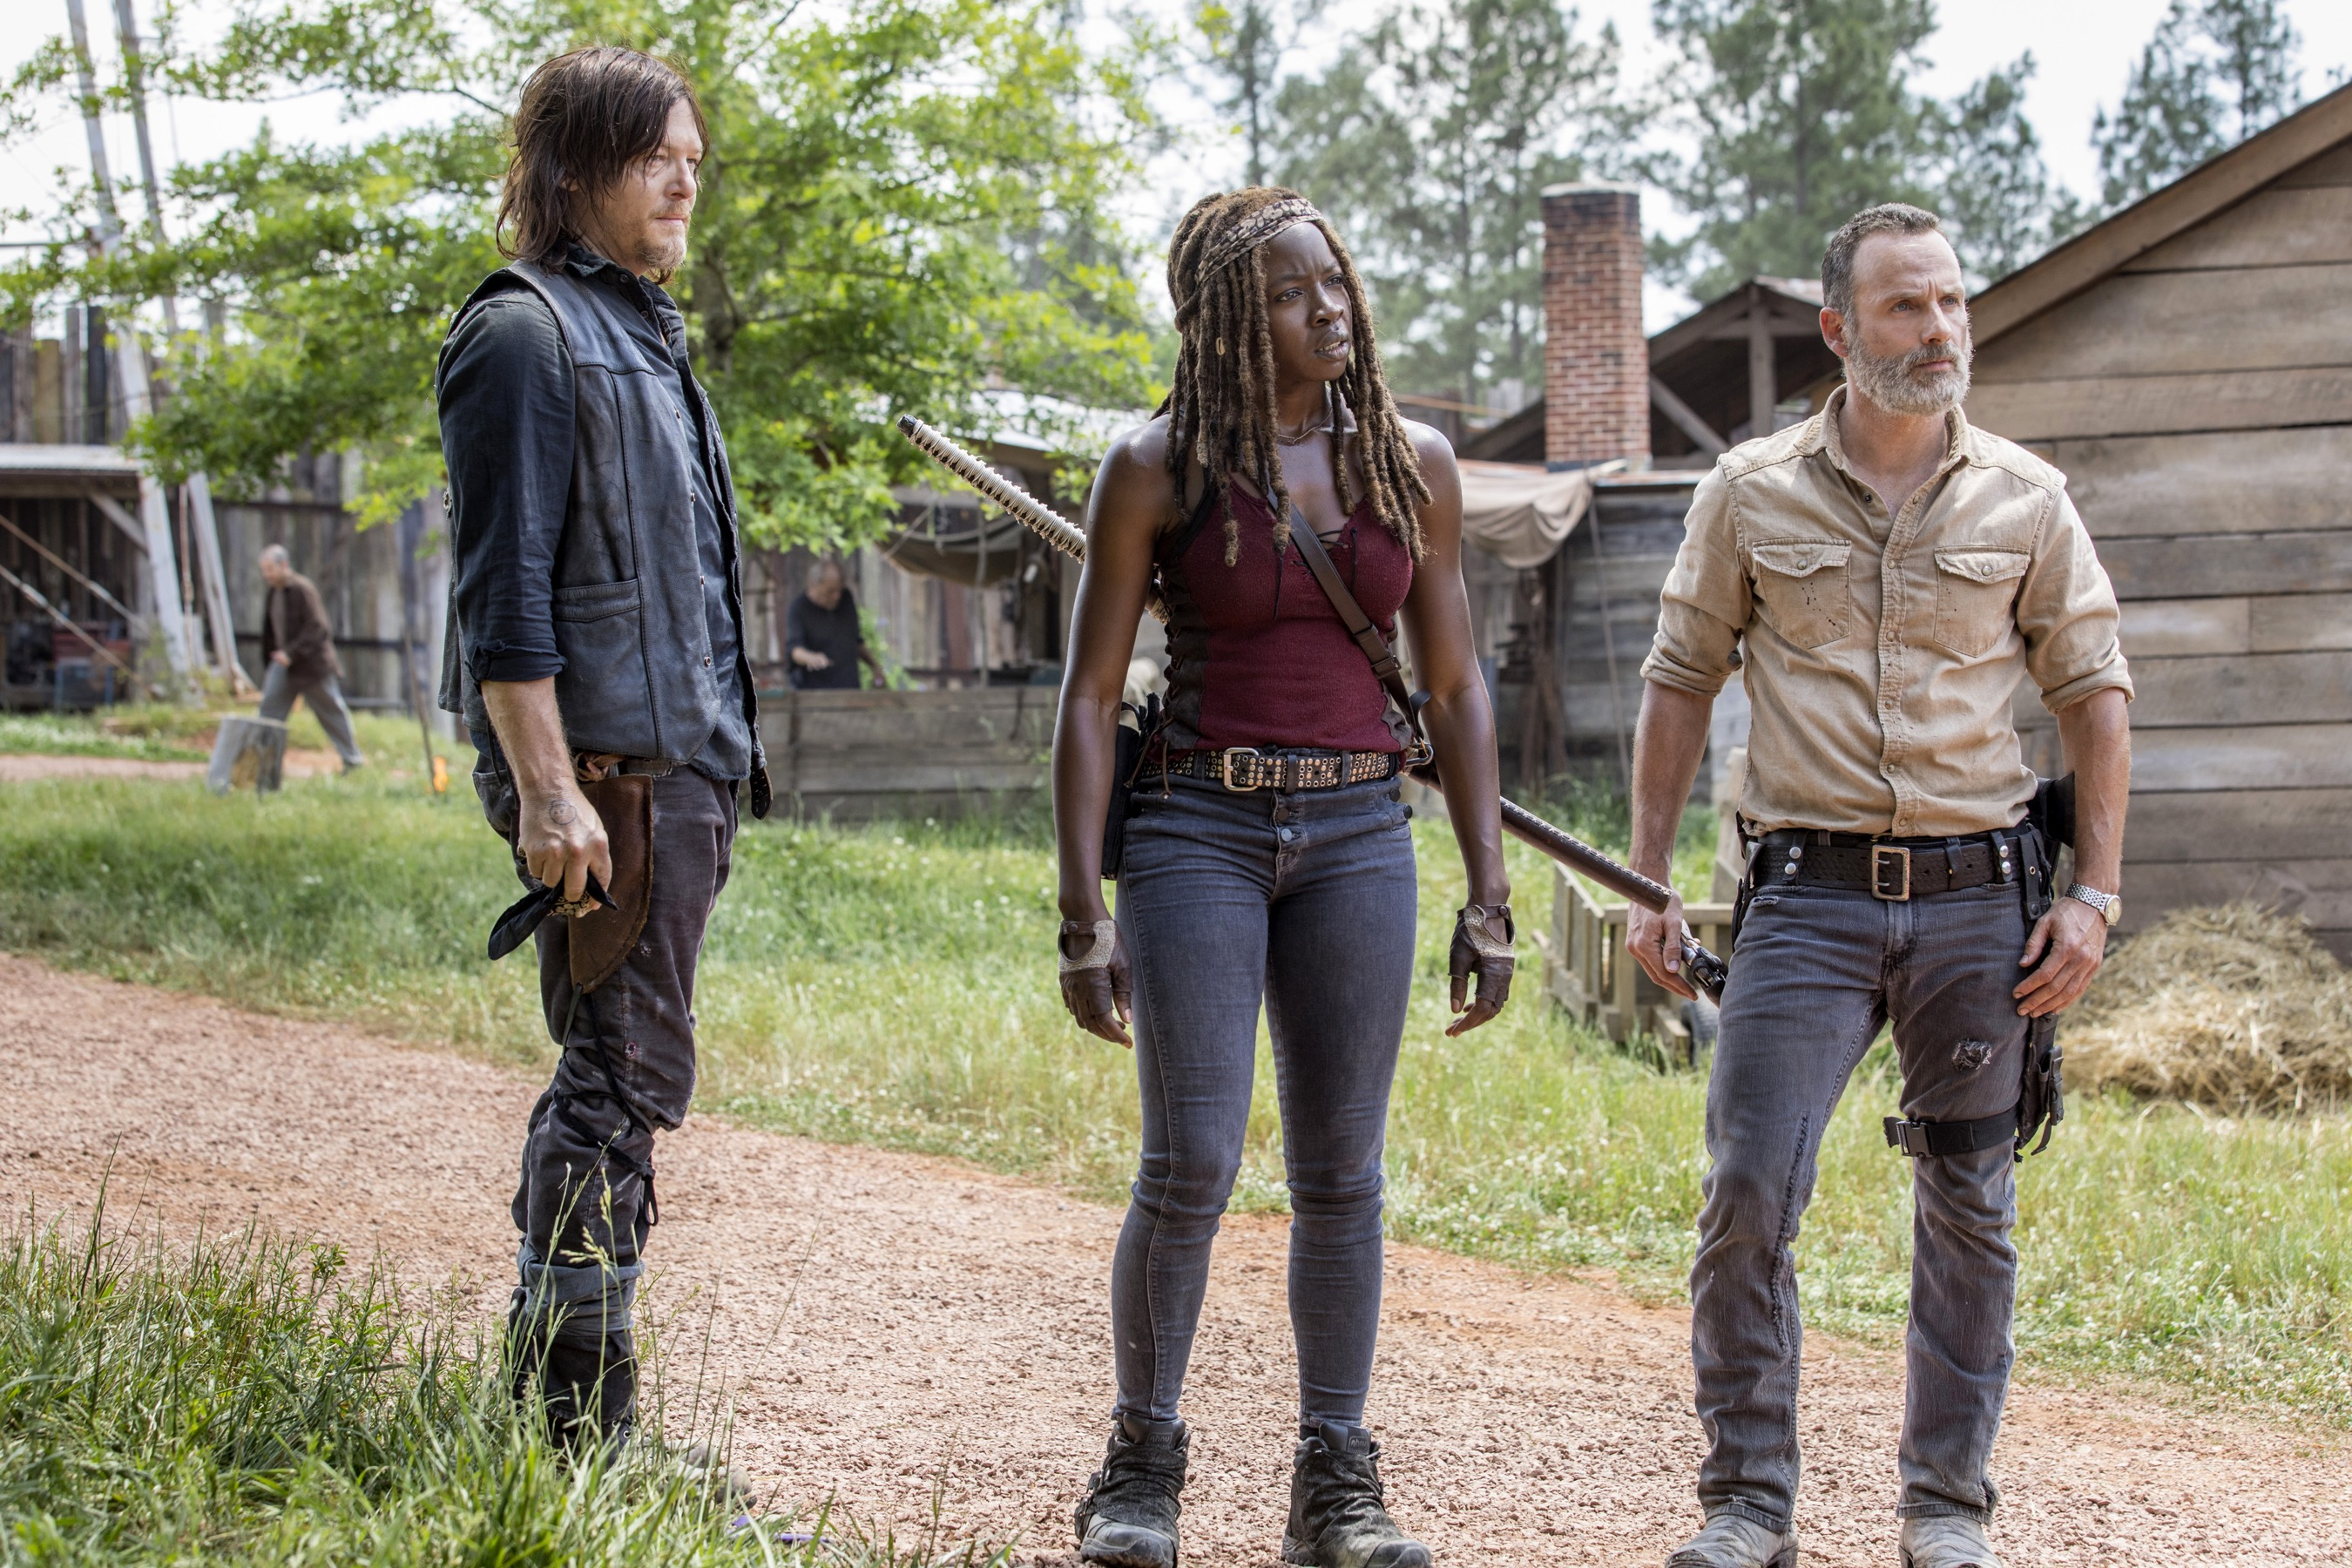 Norman Reedus as Daryl Dixon, Andrew Lincoln as Rick Grimes, Danai Gurira as Michonne - The Walking Dead _ Season 9, Episode 1 - Photo Credit: Jackson Lee Davis/AMC